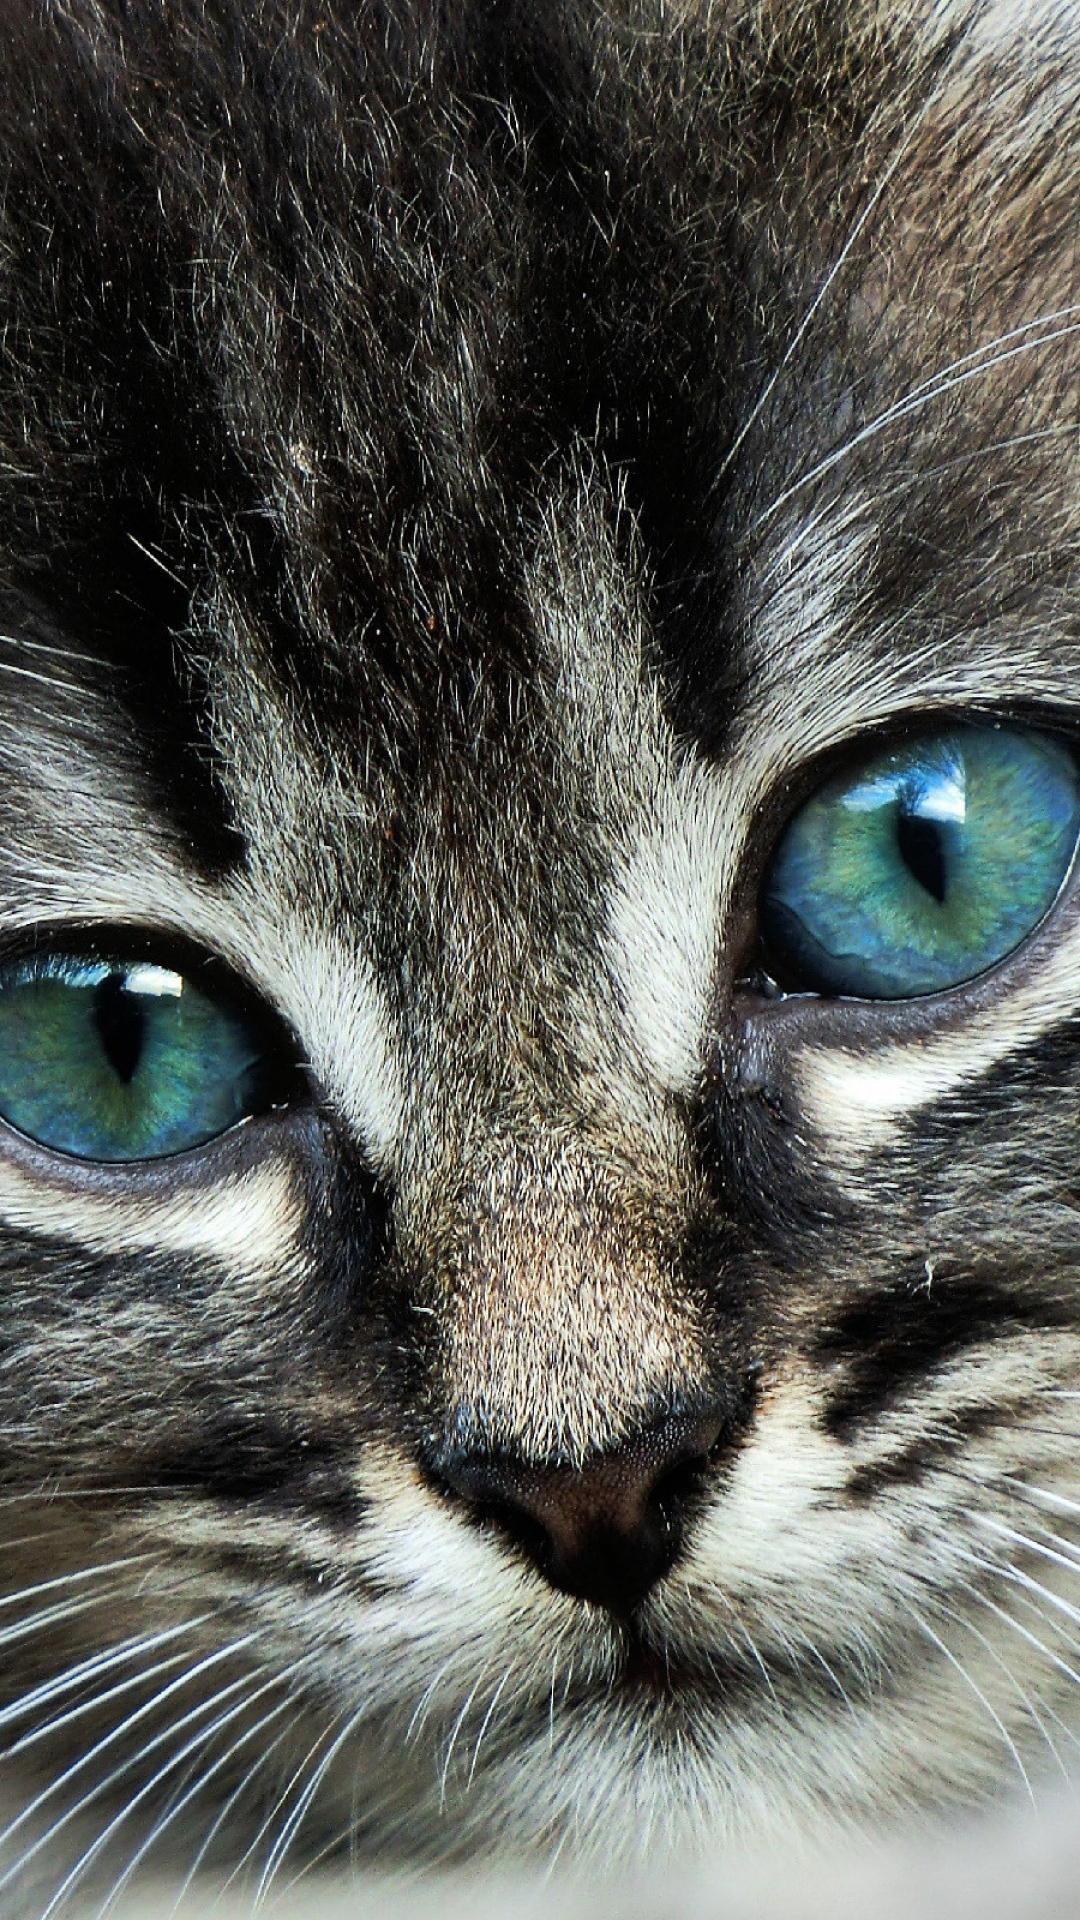 Download-1080x1920-cat-face-eyes-color-Sony-Xperia-Z-ZL-Z-Samsung-Galaxy-S-HTC-On-wallpaper-wp3404936